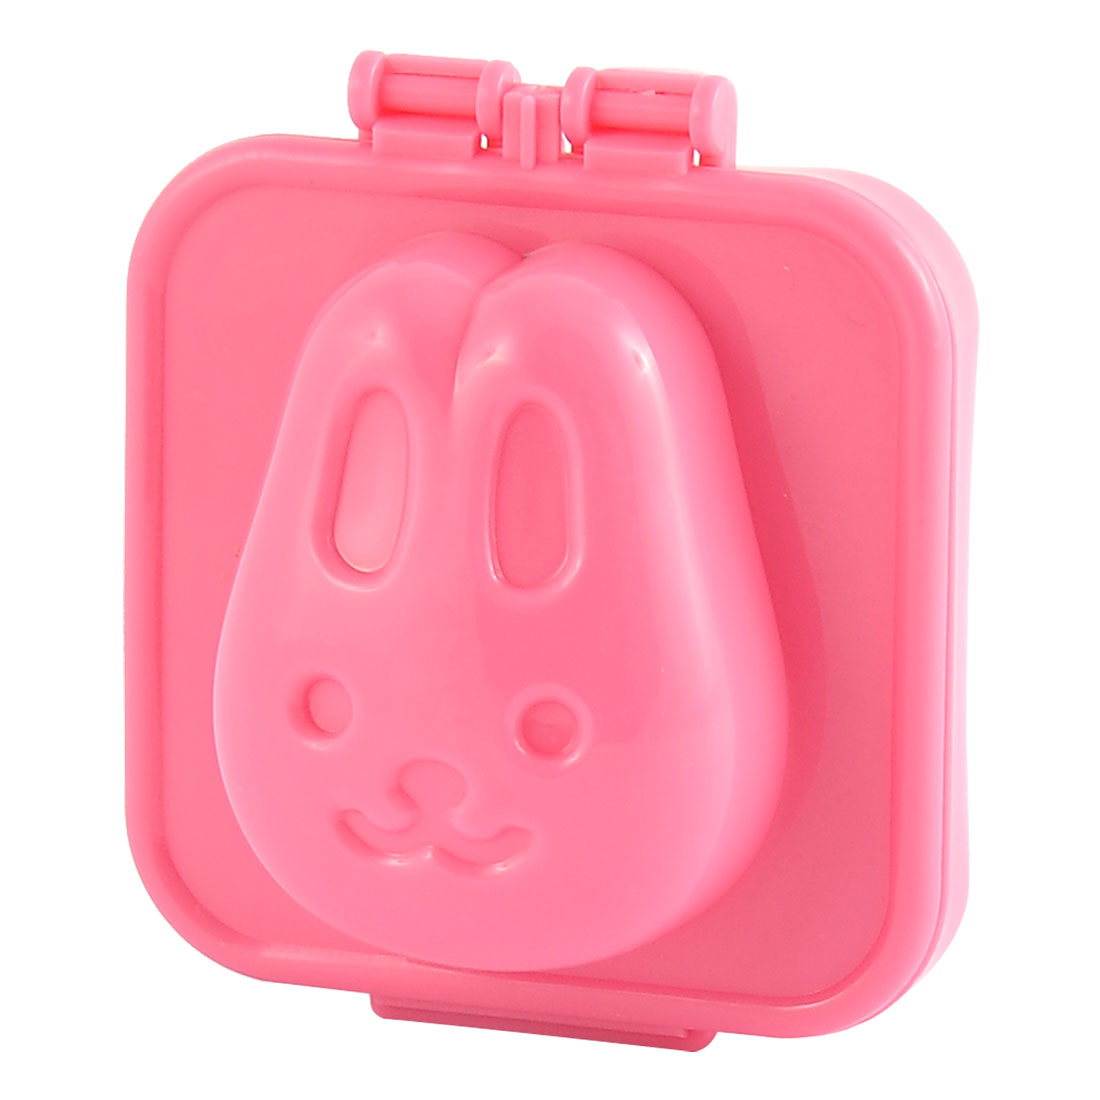 Bakery Kitchen Plastic Rabbit Shaped Bread Maker Sandwich Sushi Rice Mold Pink